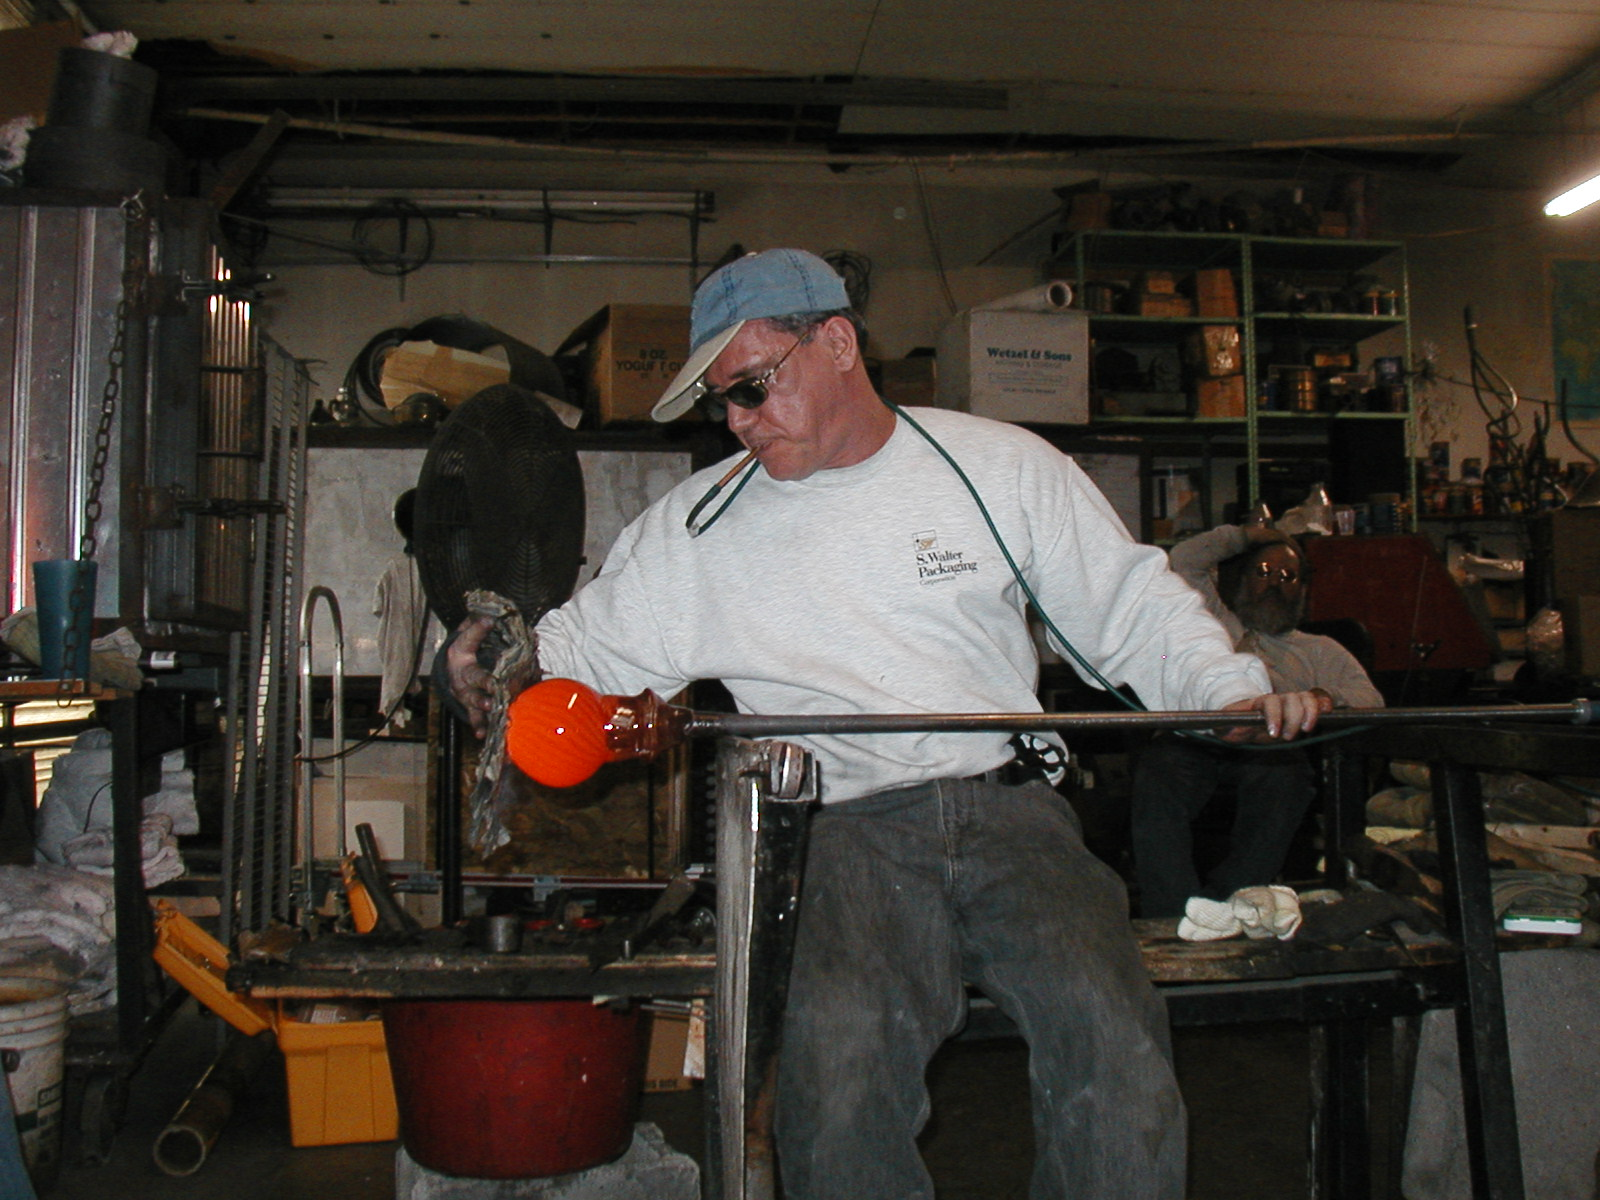 Glassblower.Info - Joel Bless Glasslight Glassblowing class January 18 2004 #101